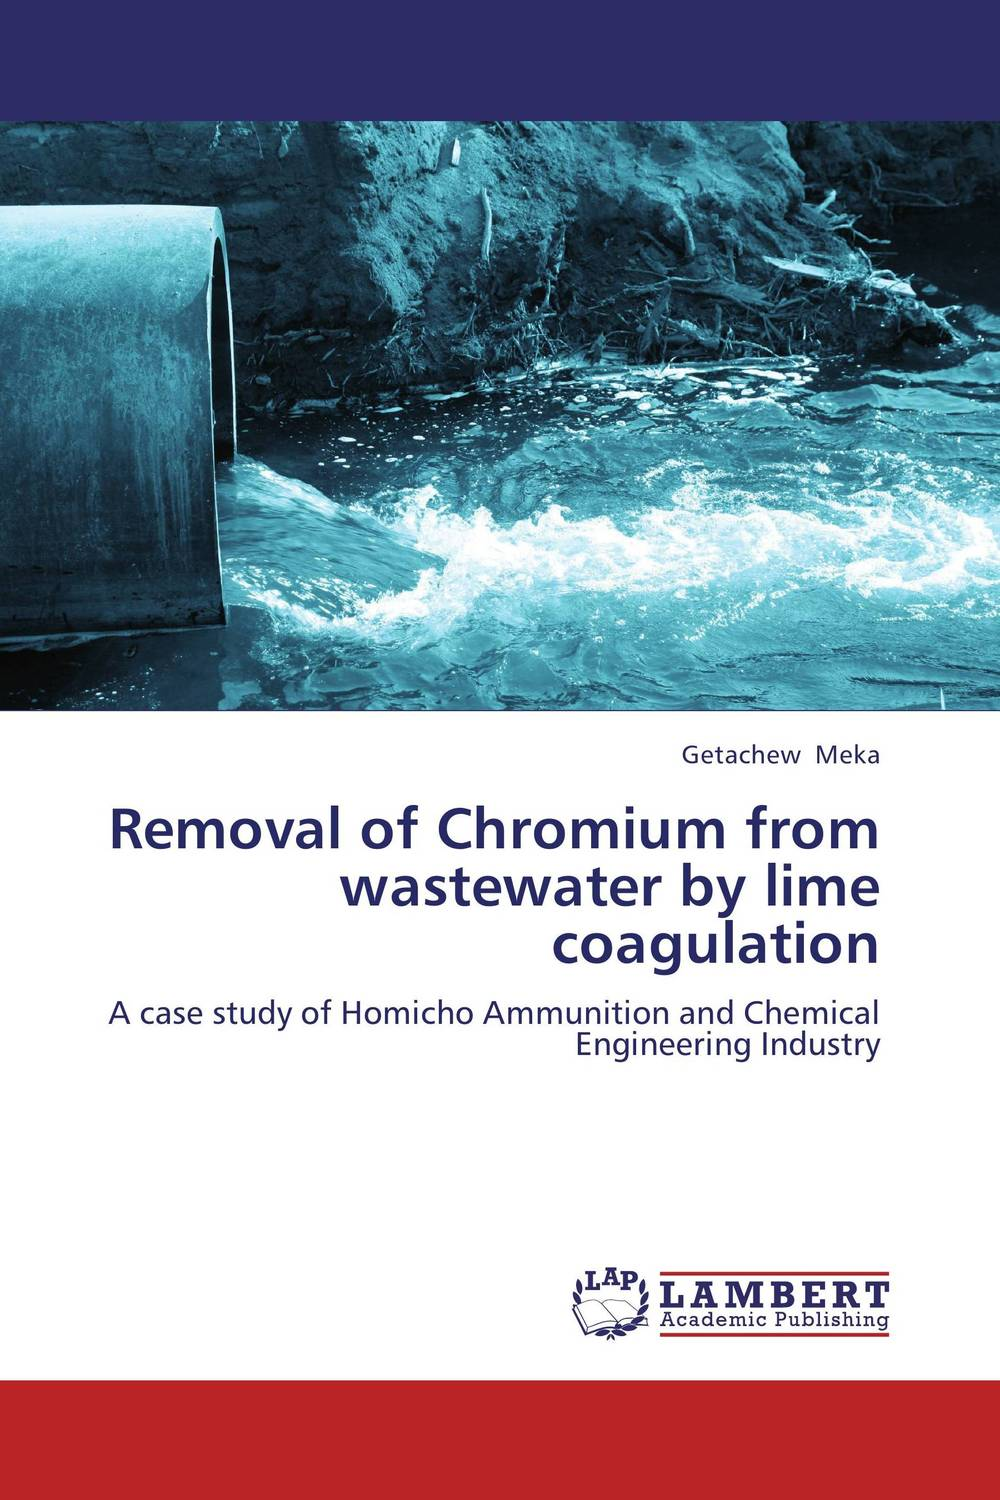 Removal of Chromium from wastewater by lime coagulation ayad jaafar mohammed ibrahim and adnan abdalrazak removal of copper ii from wastewater using modified carbon nanotubes